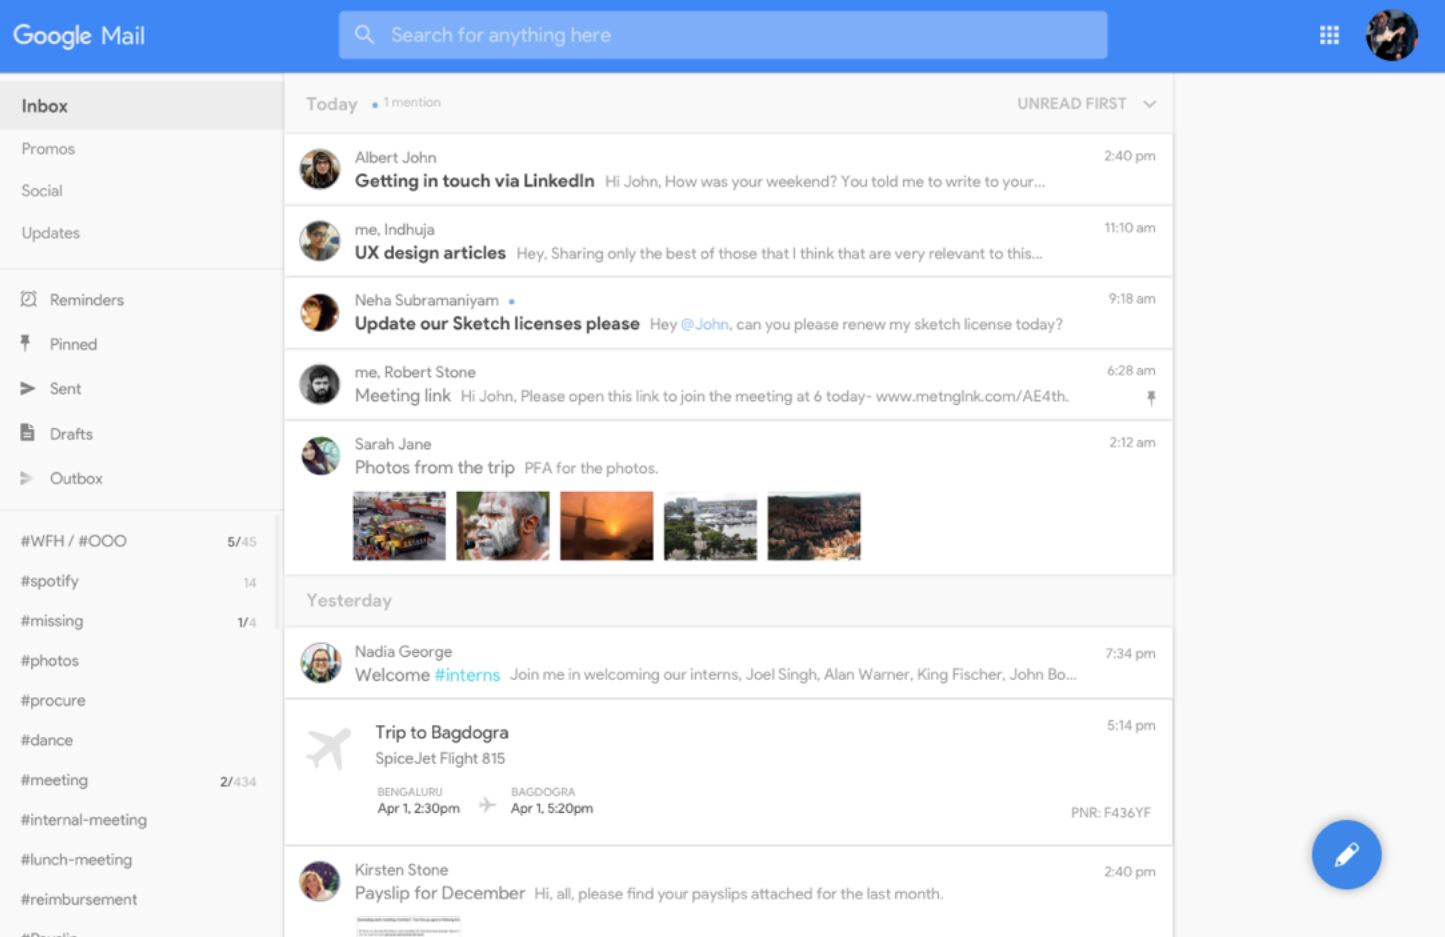 gmail redesign konzept desktop